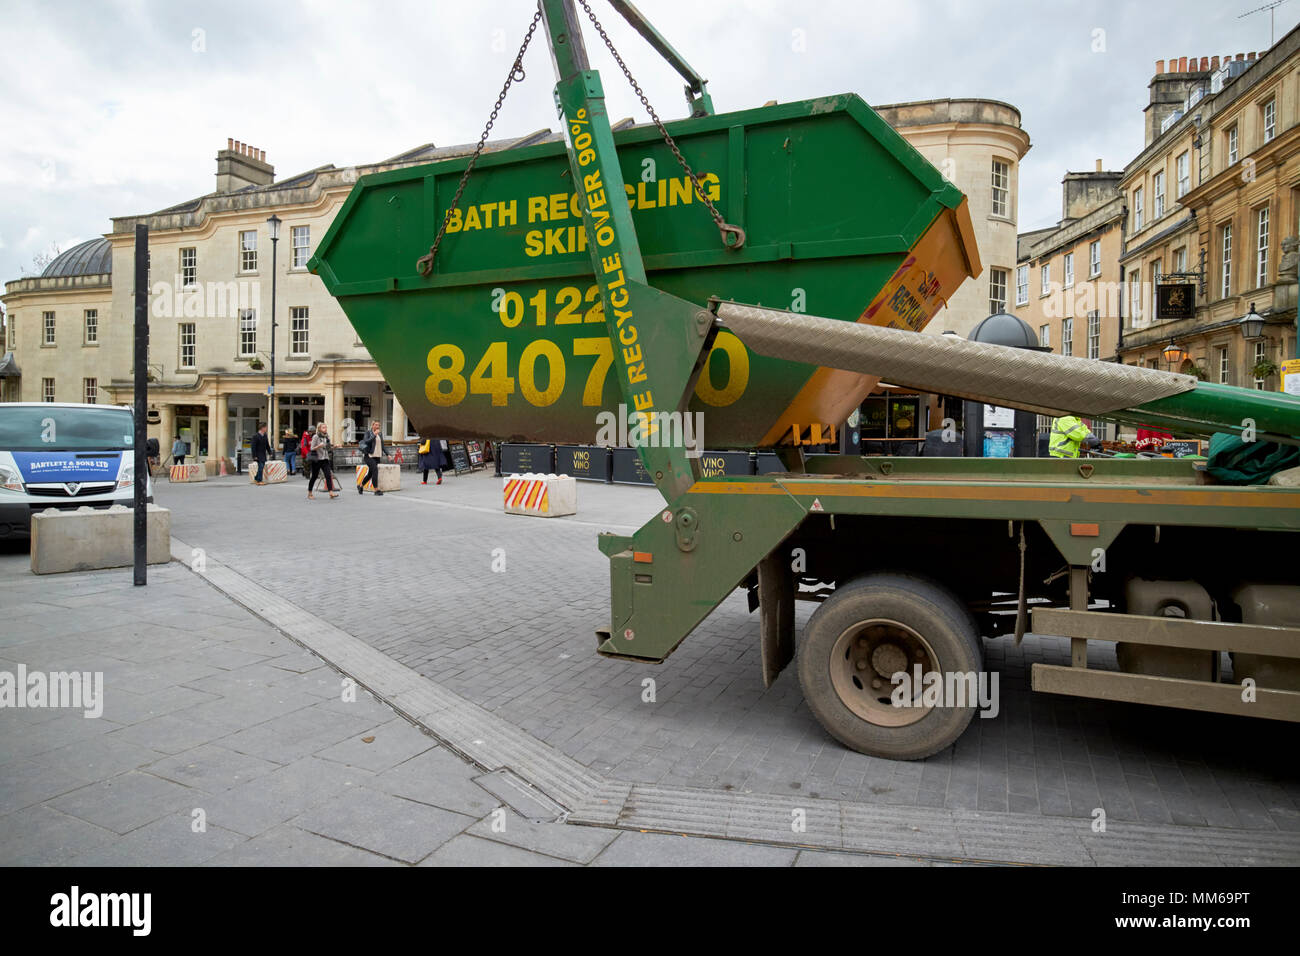 recycling skip being delivered by lorry in the city centre of Bath England UK - Stock Image